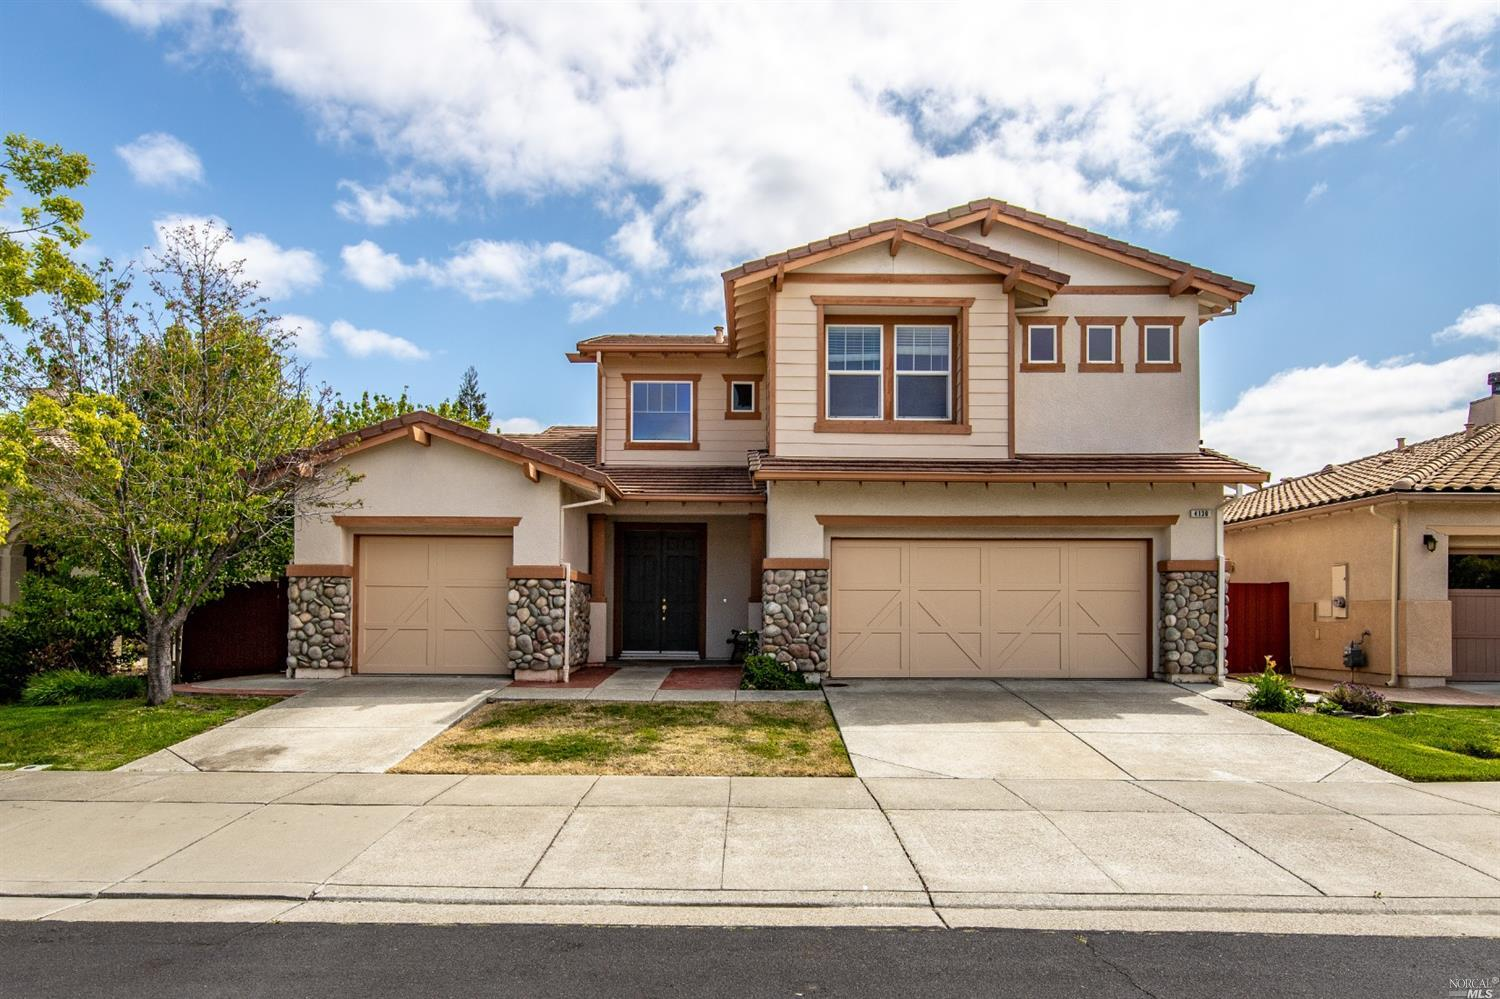 Beautiful Southwestern style 2 story home situated in Paradise Valley Golf Courses community. With n